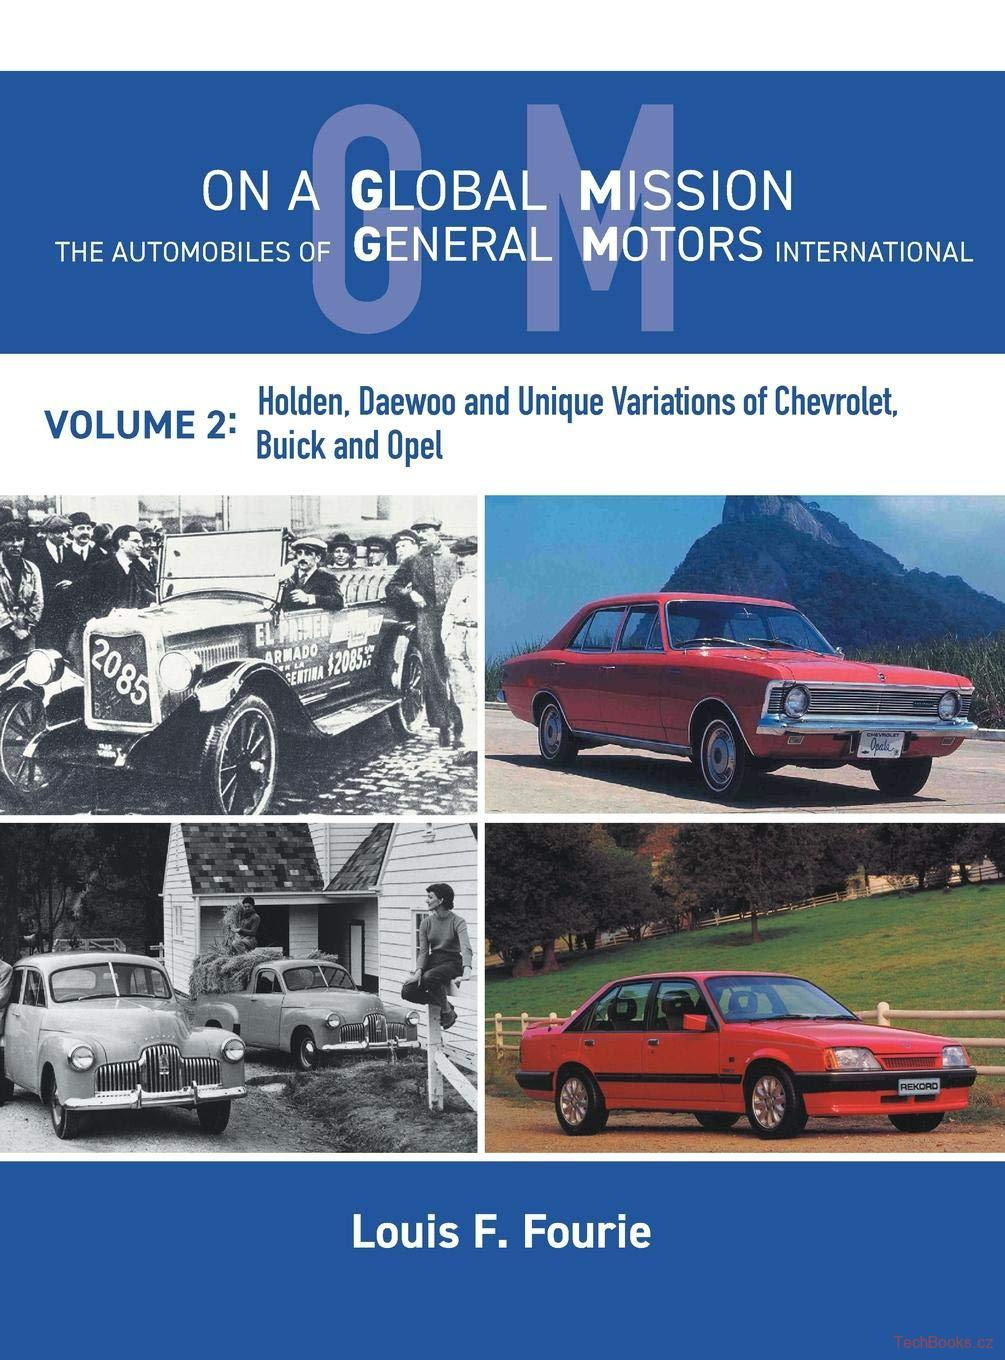 On a Global Mission: The Automobiles of General Motors International - Volume 2